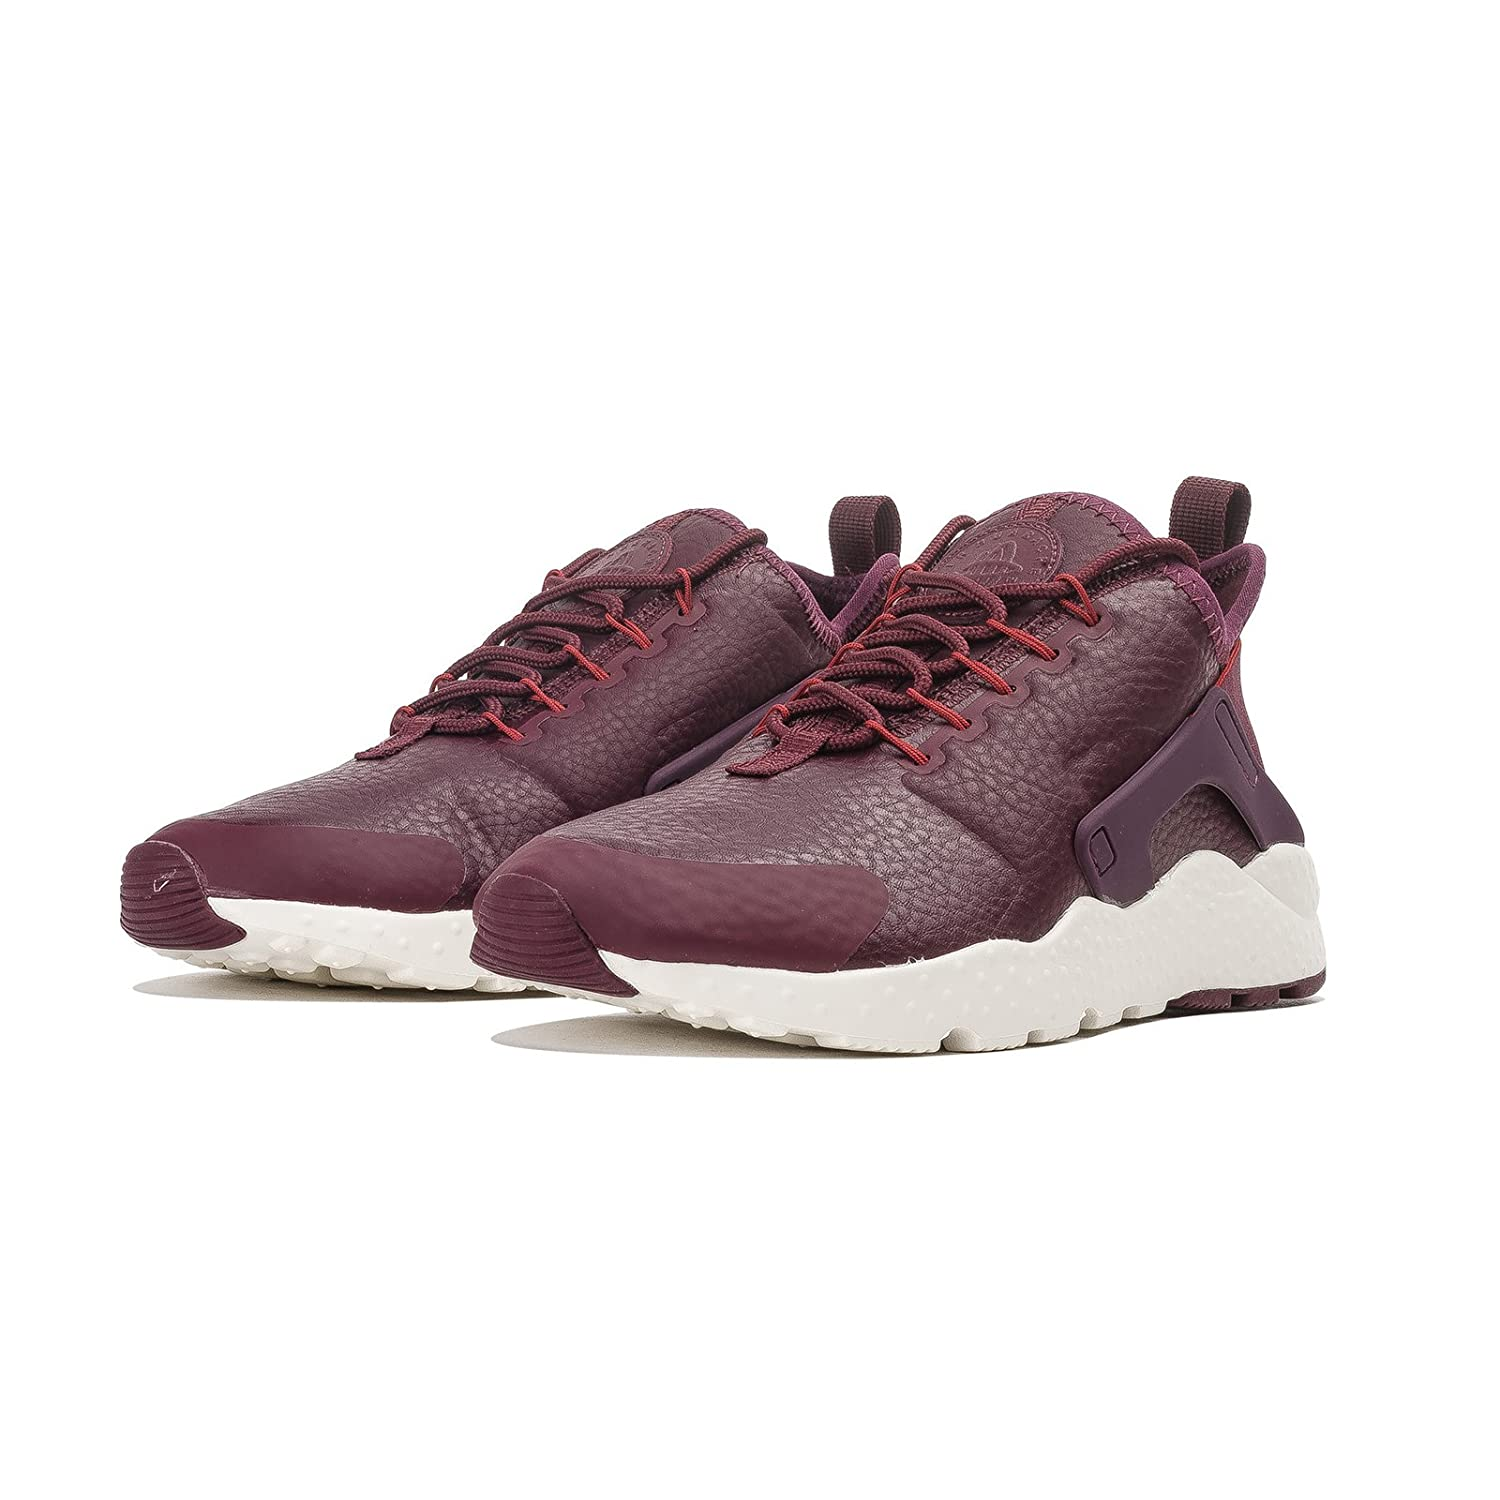 NIKE Women's Air Huarache Run Ultra Running Shoe B01M3PNP3M 7 B(M) US|Night Maroon/Dark Cayenne-sail